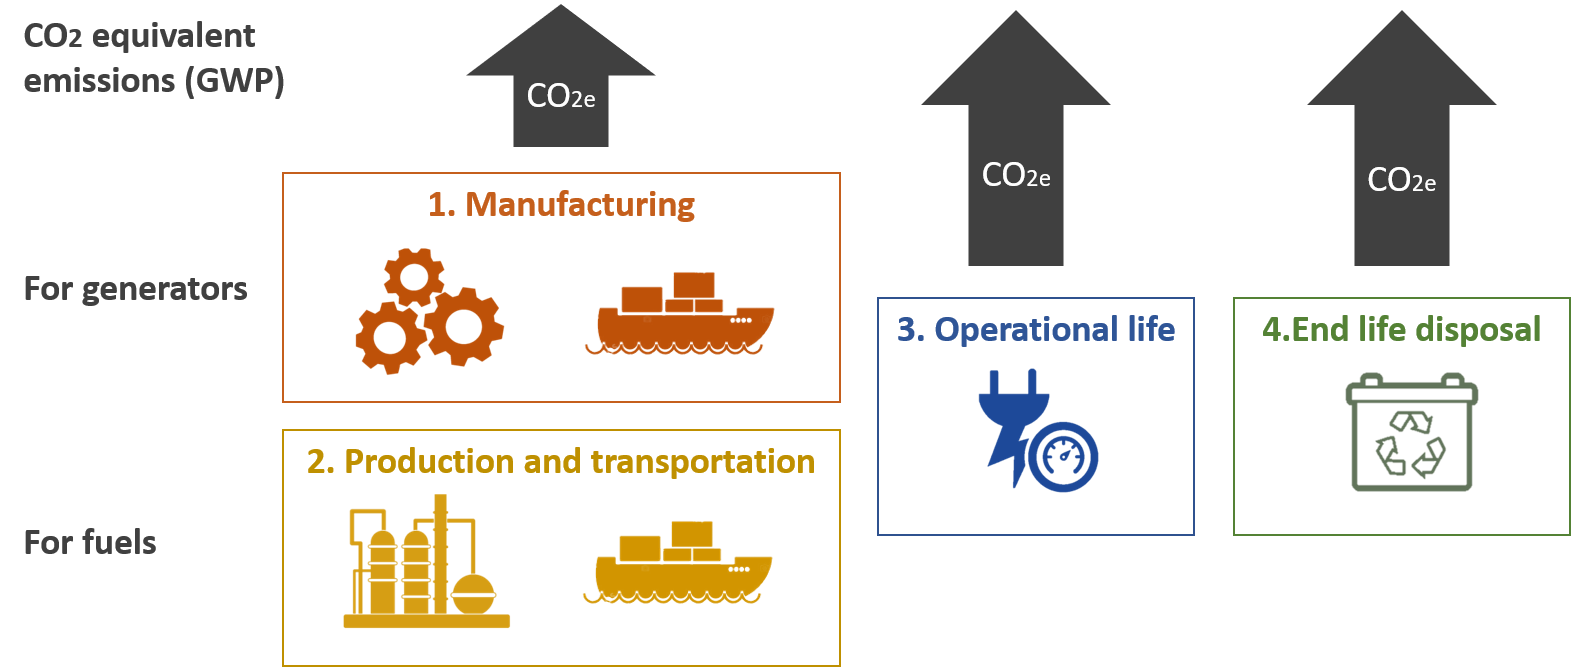 CO2 impact full Life Cycle Assessment (LCA) of a power source including manufacturing, fuel production, transportation, operational life and end of life.